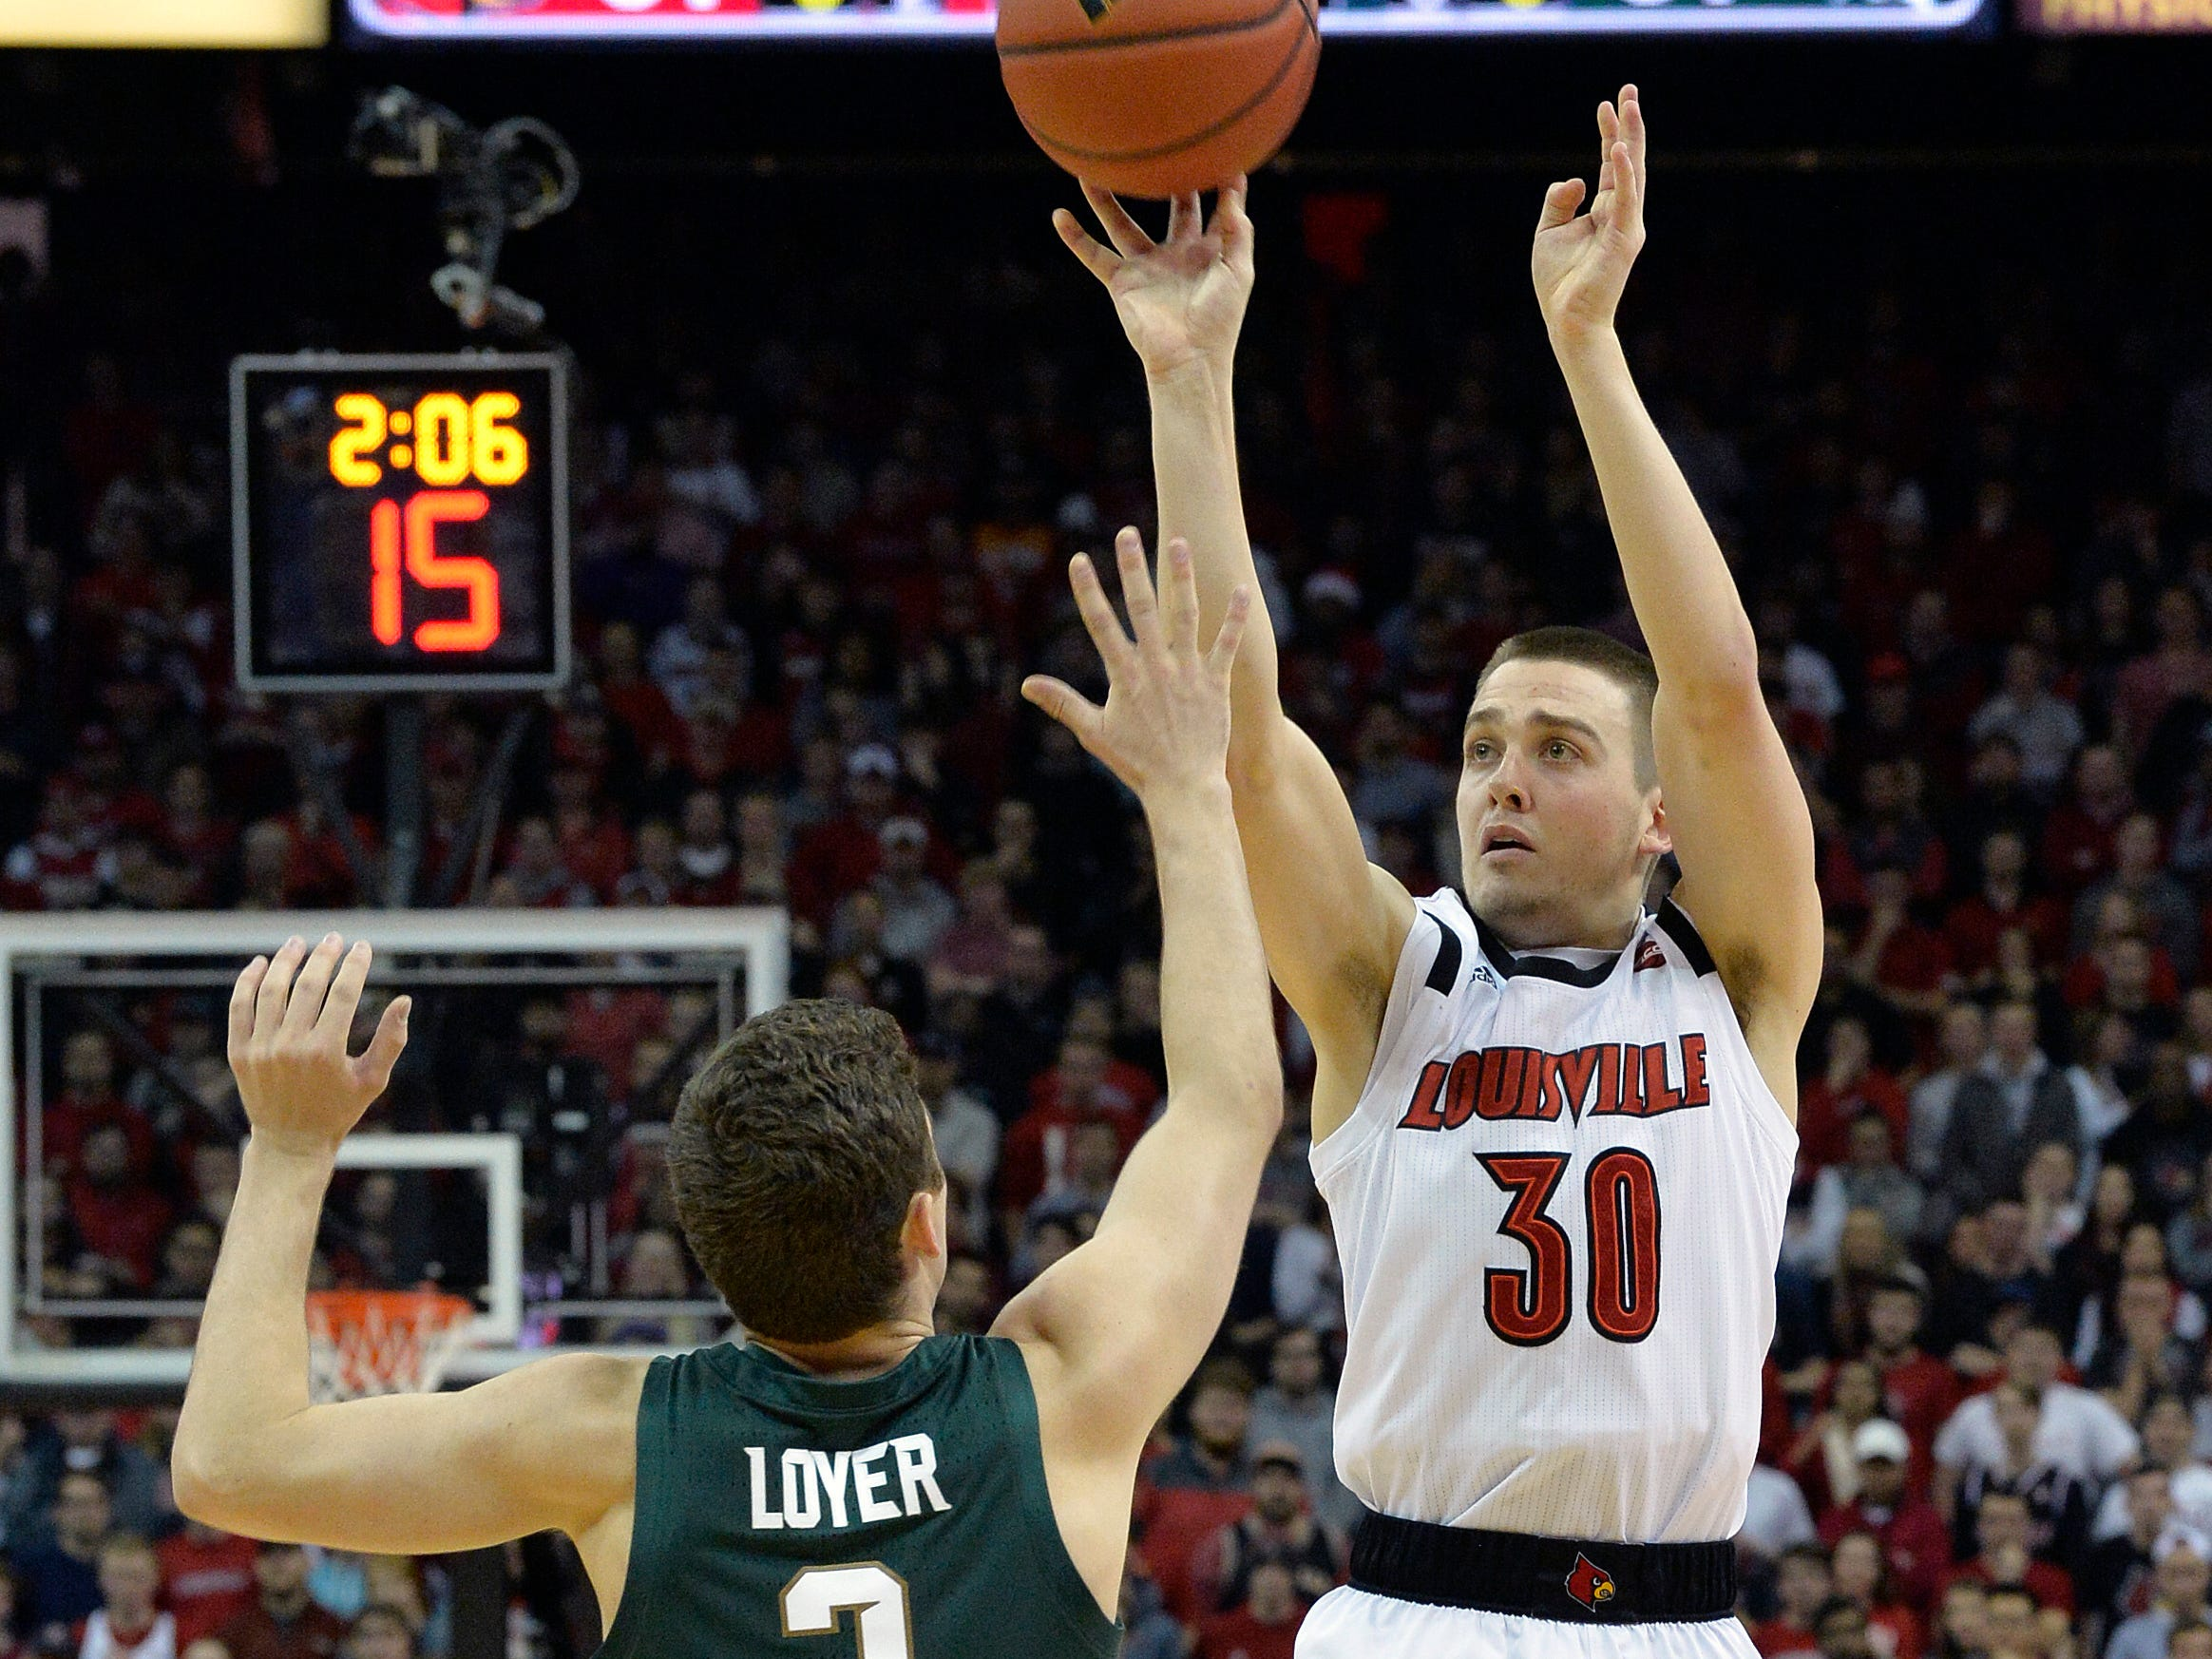 Louisville guard Ryan McMahon (30) attempts a three point shot over the defense of Michigan State guard Foster Loyer (3) during the second half of an NCAA college basketball game, in Louisville, Ky., Tuesday, Nov. 27, 2018. Louisville won 82-78.